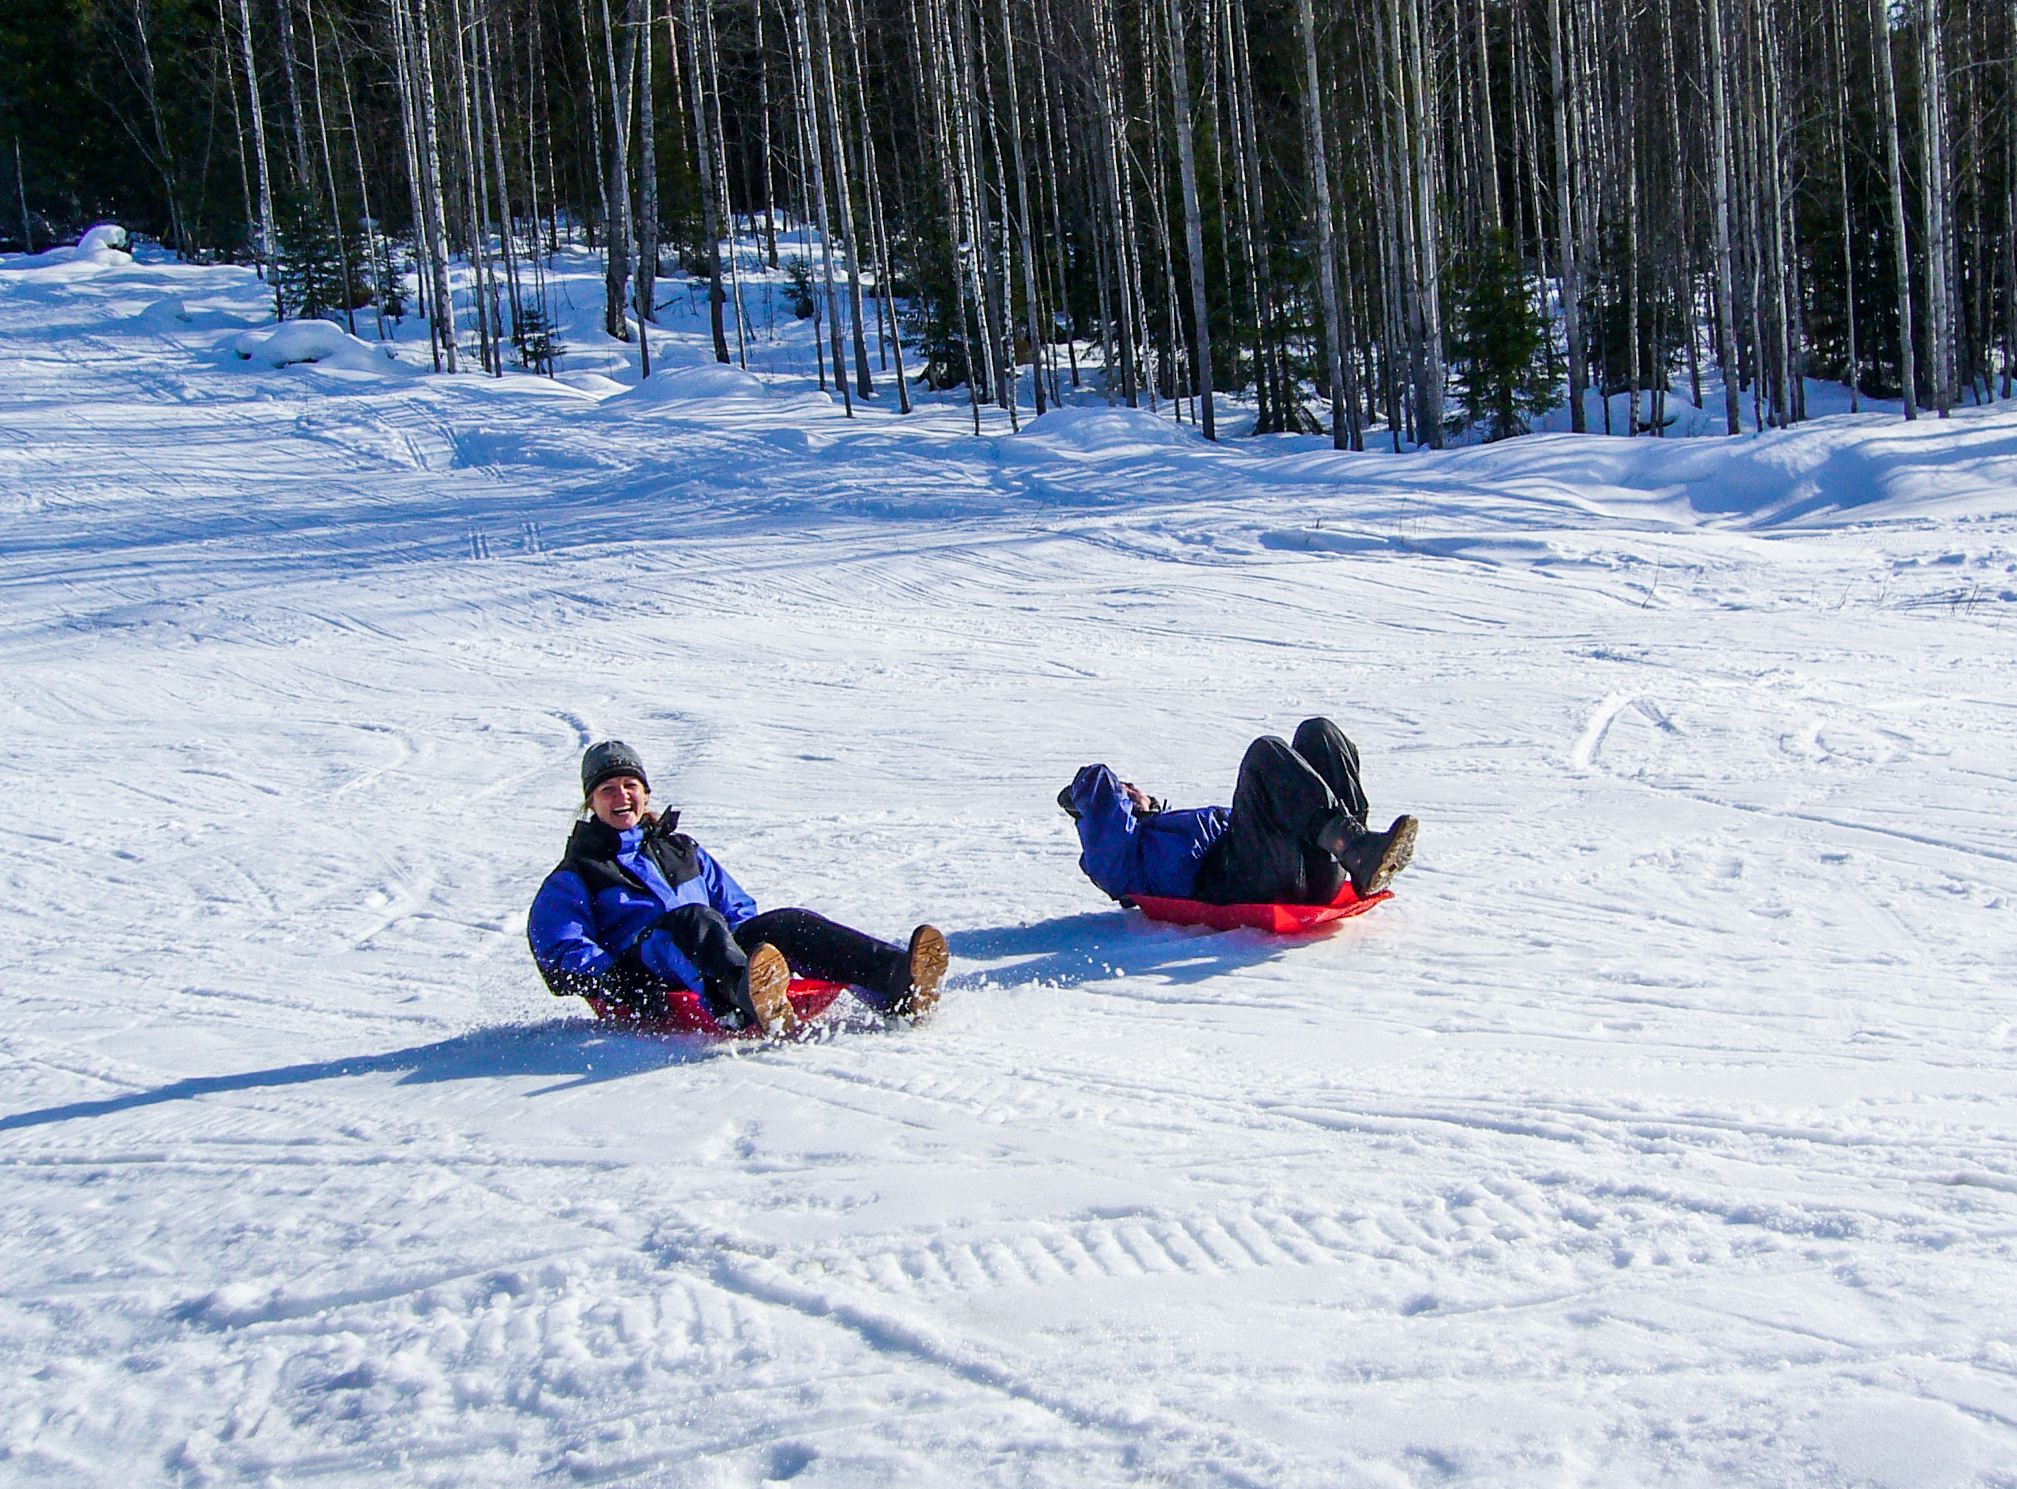 two people sledding